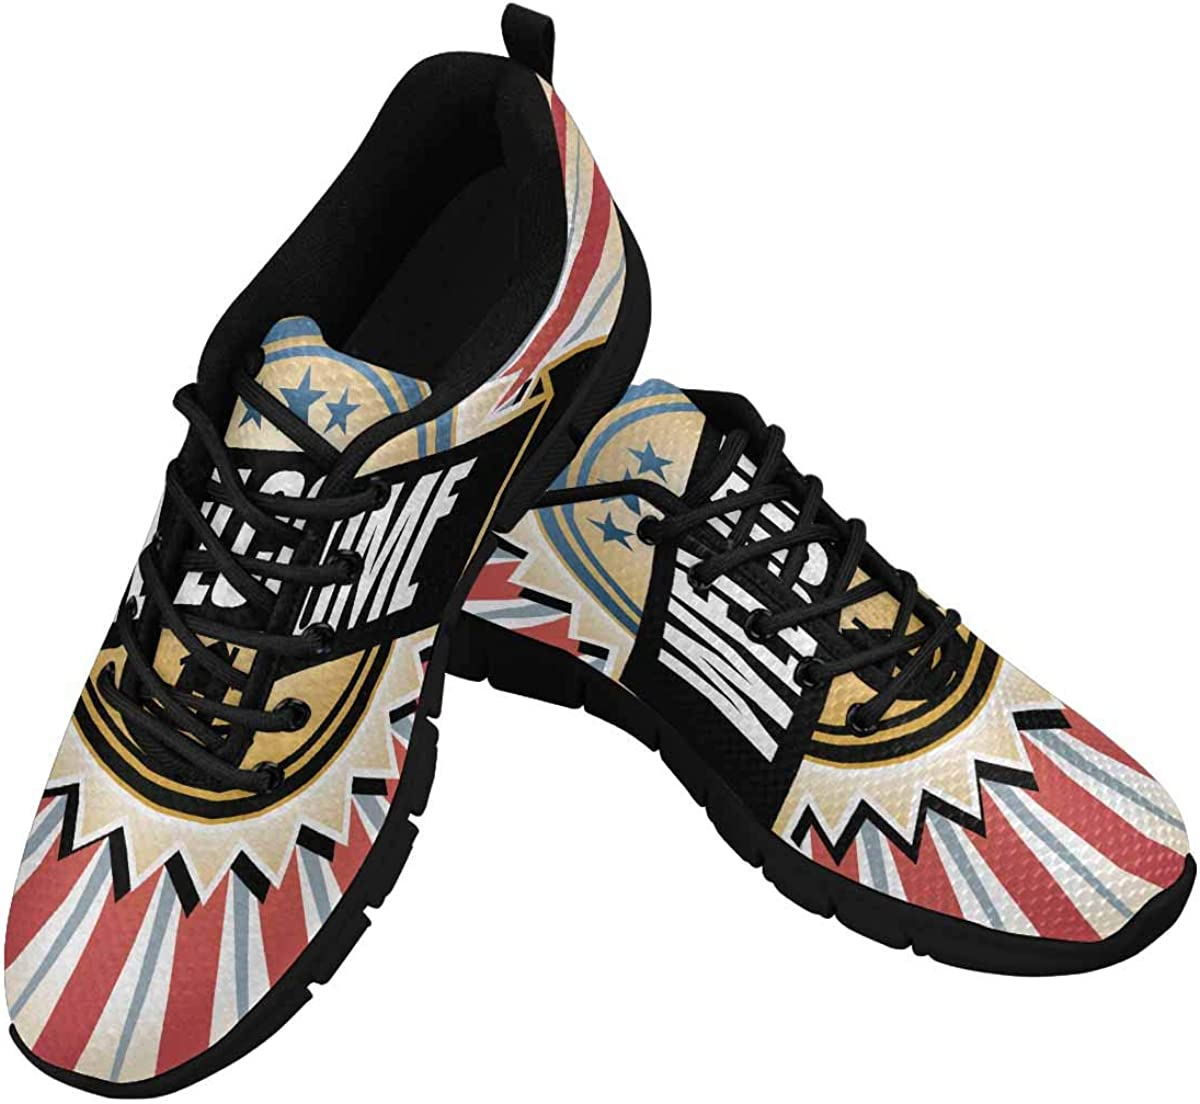 InterestPrint Welcome Home Vintage Pattern Lightweight Mesh Breathable Sneakers for Women